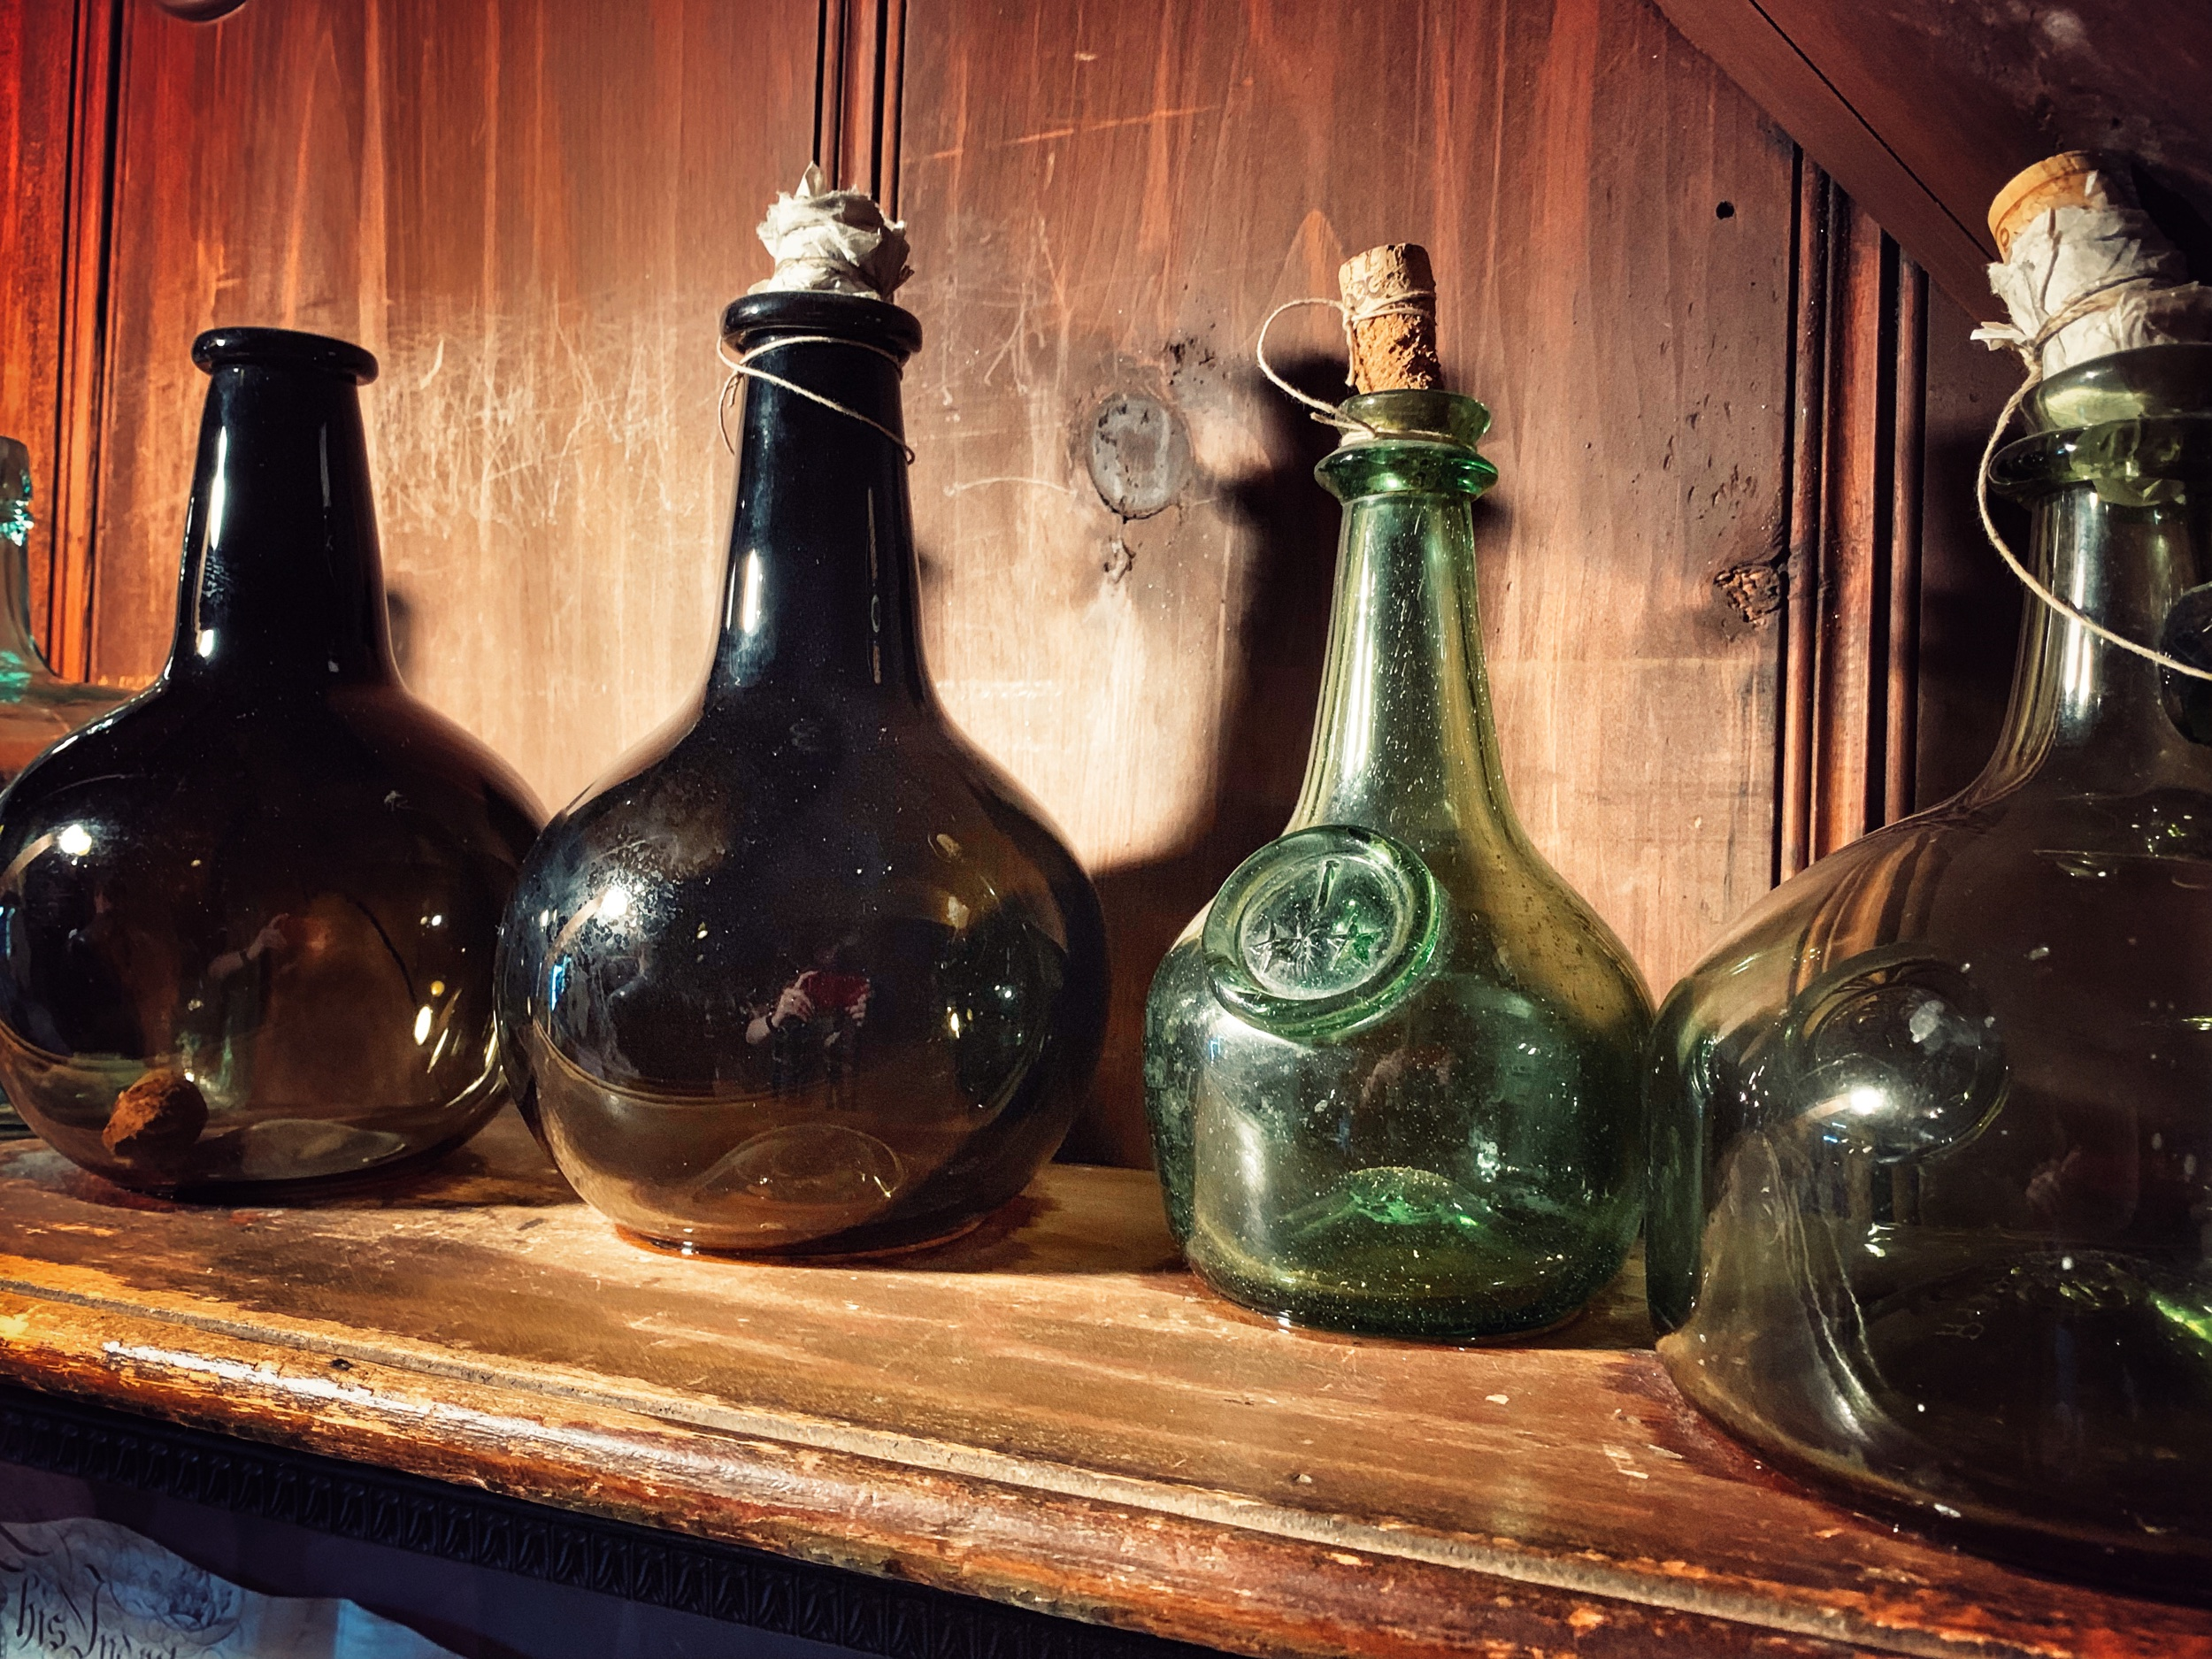 Bottles on the Shelf